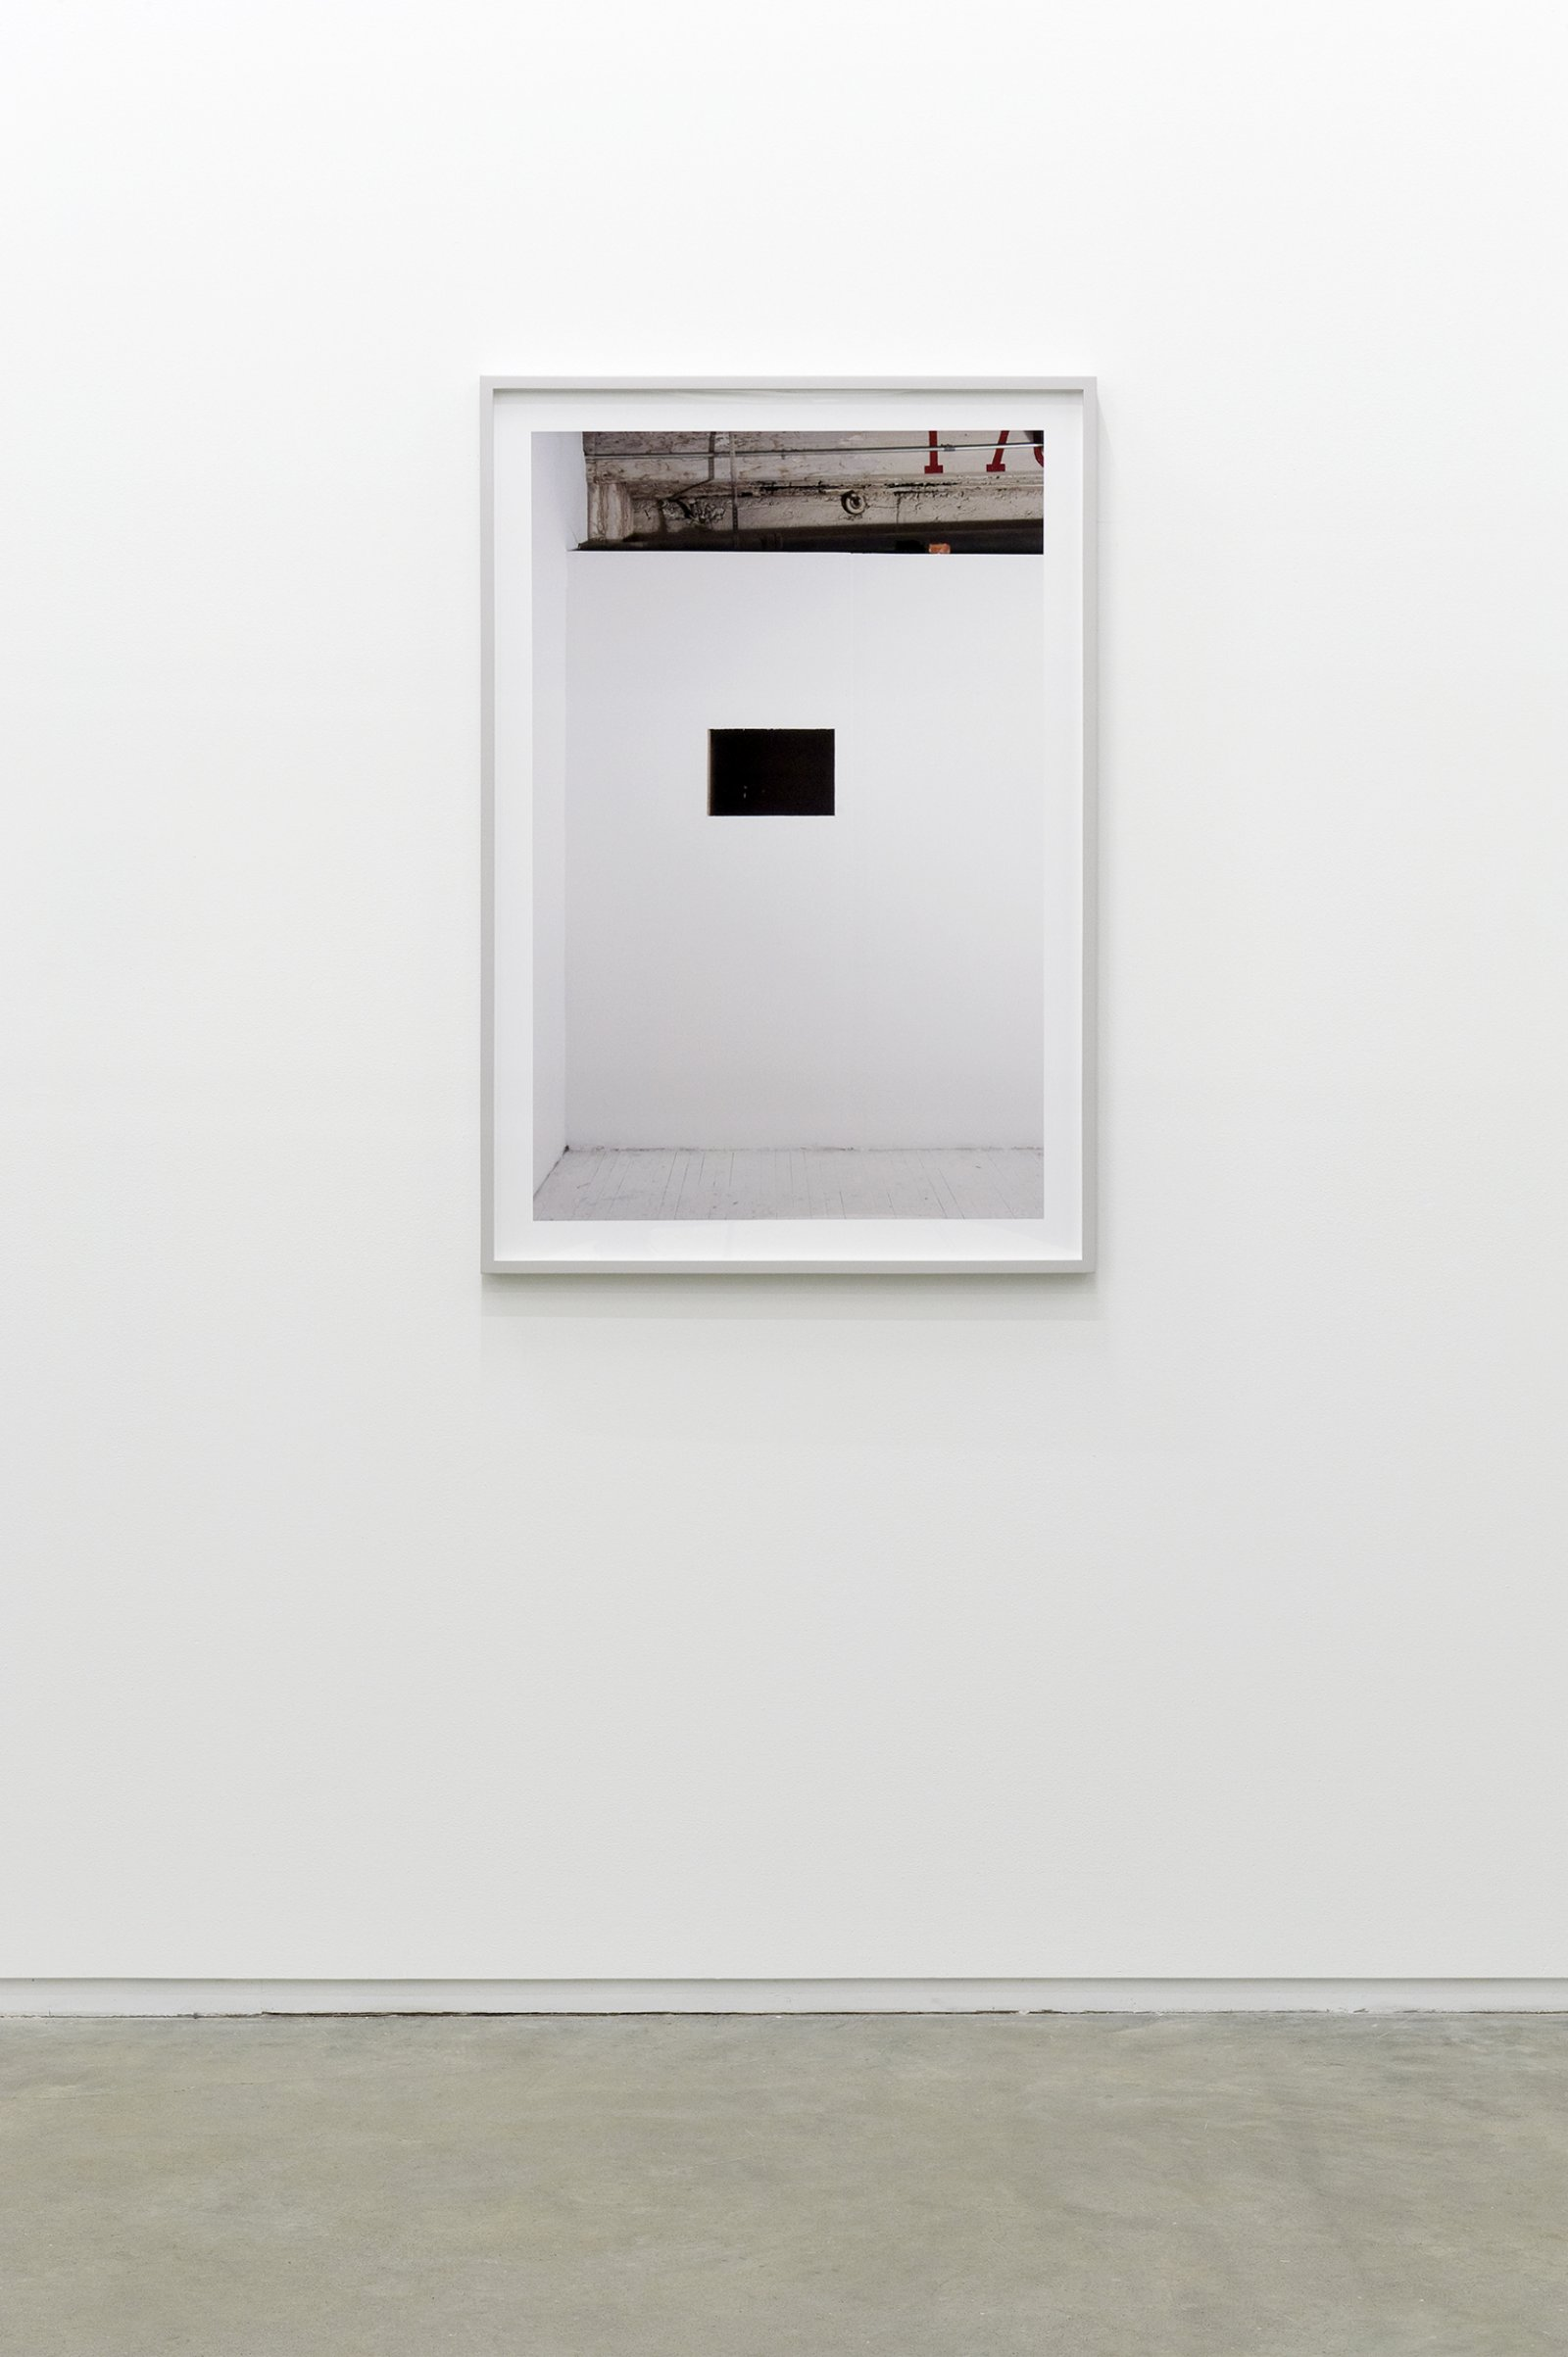 ​Arabella Campbell, Study of an object that appears, 2011, lightjet print of studio wall at 188 W 3rd Ave, Vancouver, 41 x 29 in. (104 x 73 cm) by